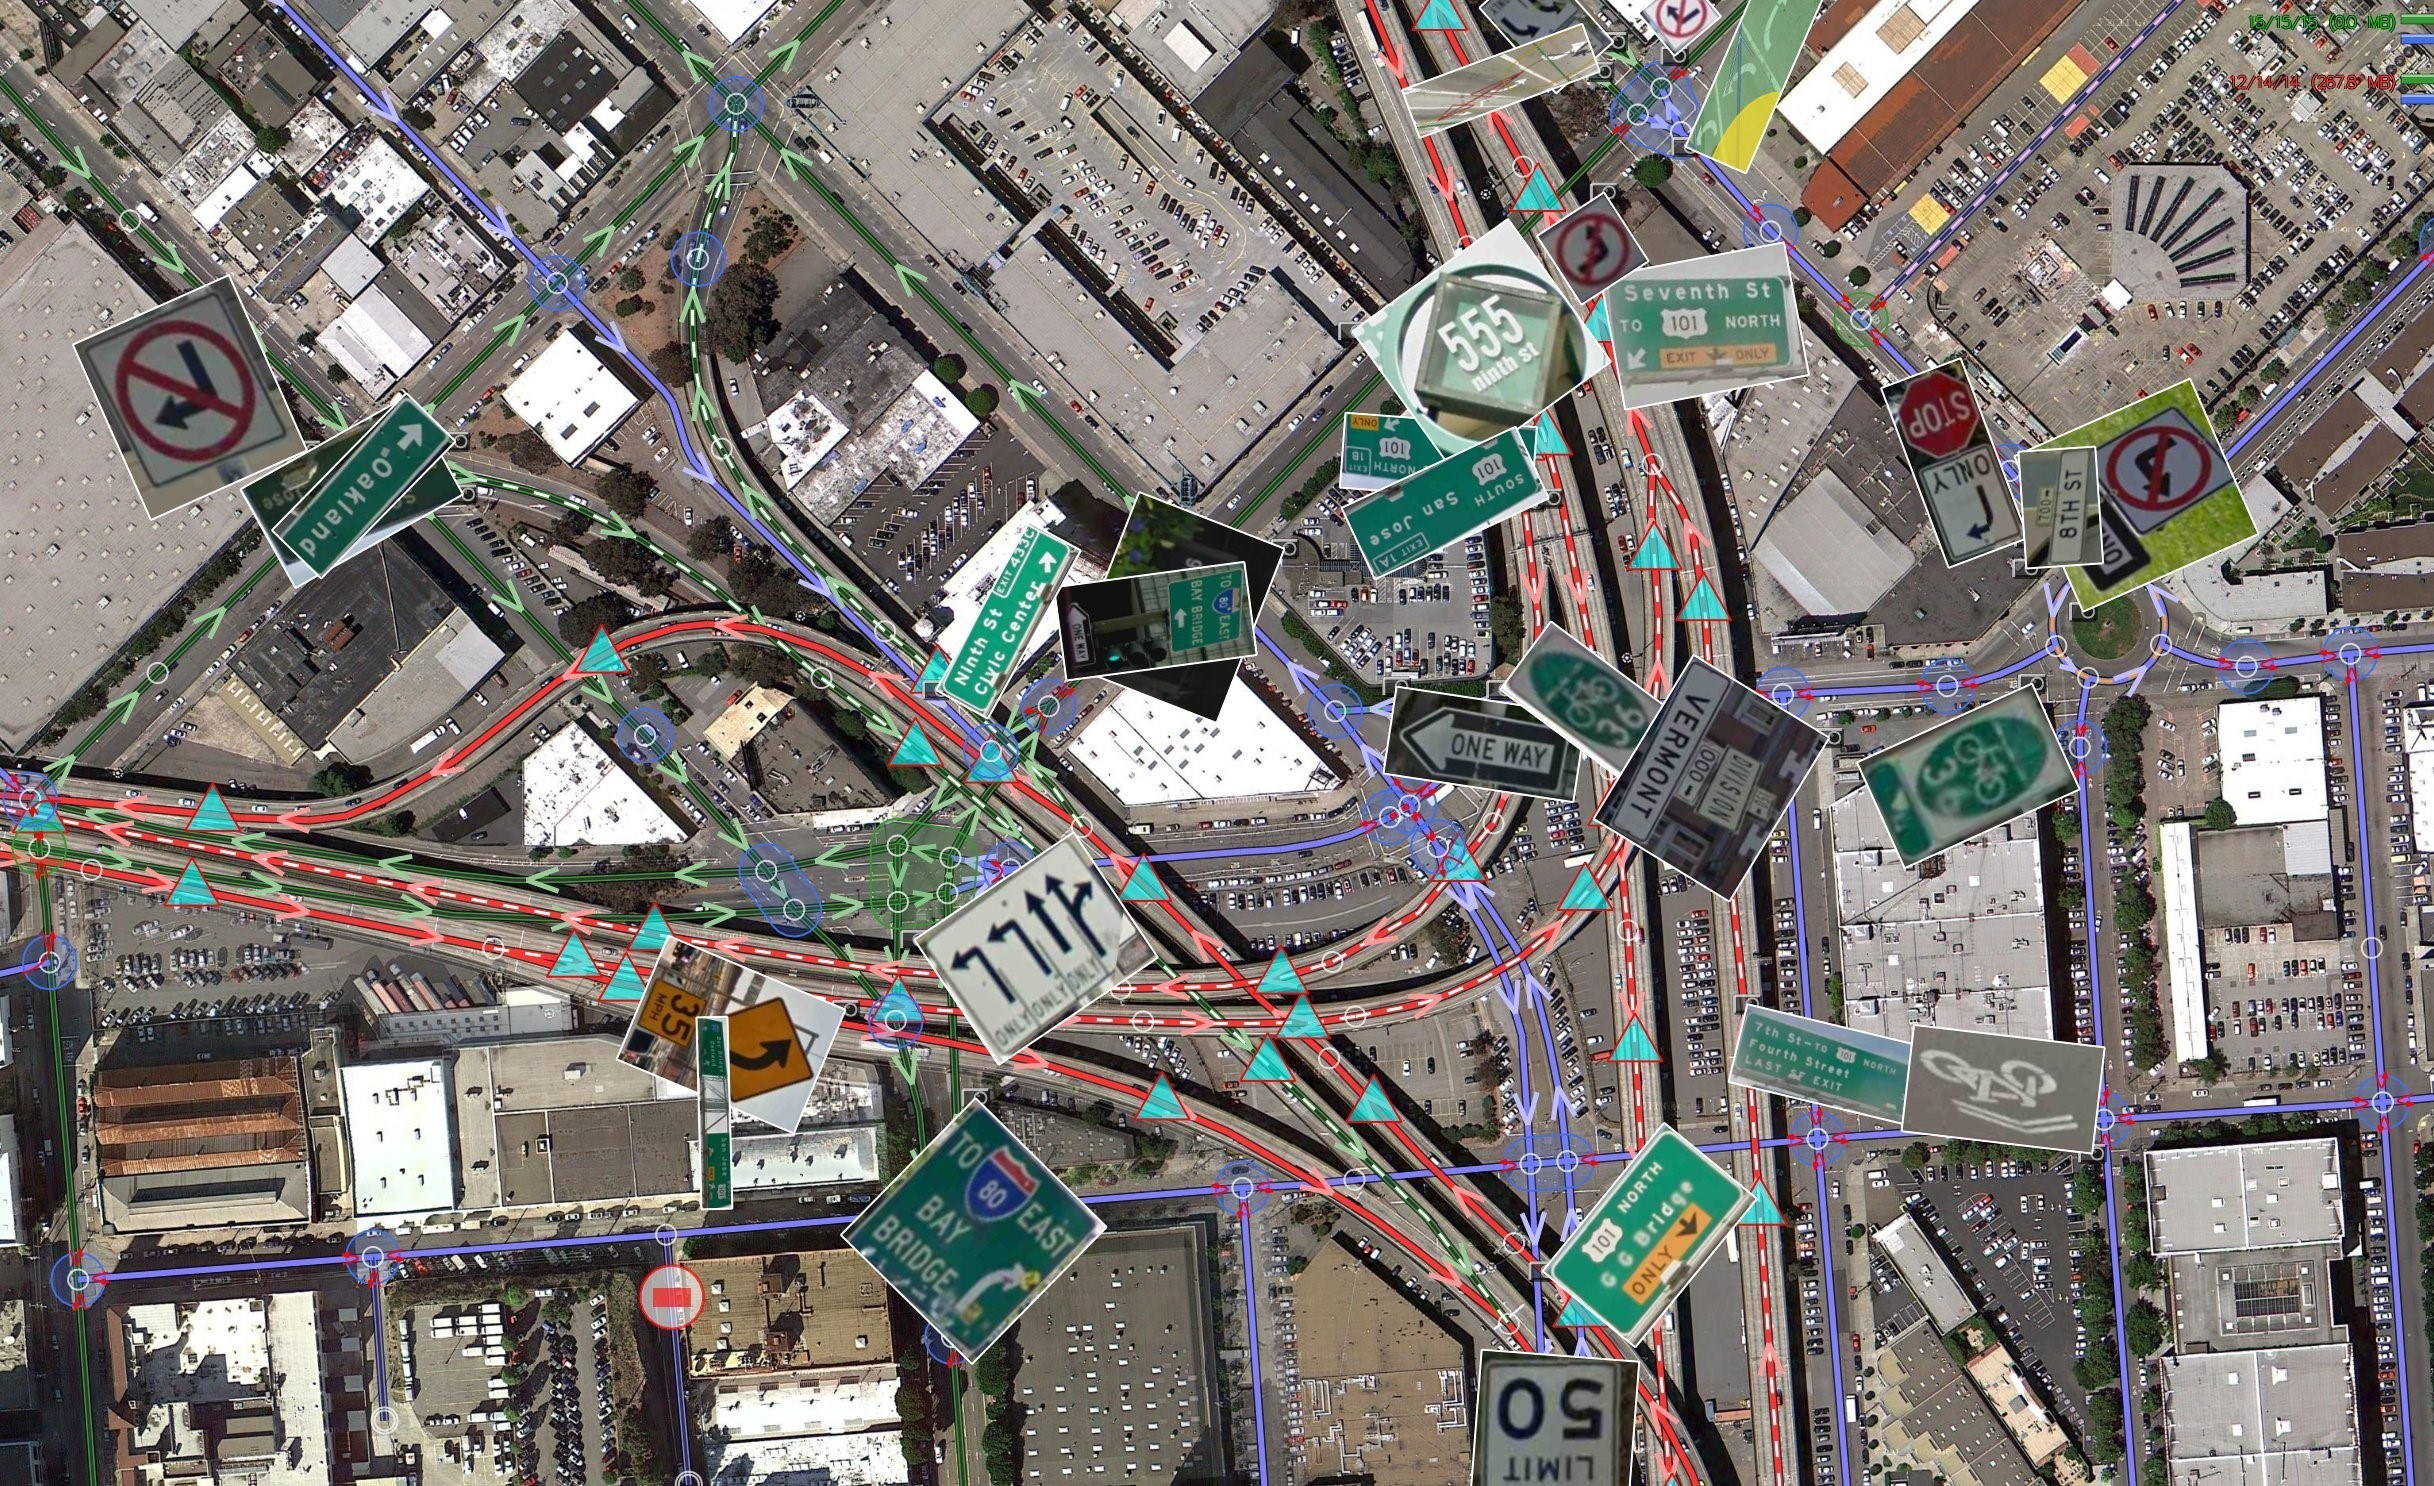 Digitizing the globe one pixel at a time – Google Maps ... on google map santa barbara county, google map laramie, google map madera, google map davis, google map staten island, google map willows, google map cleveland, google map green bay, google map embarcadero, google map newport beach, google map el paso, google map carlsbad, google map los gatos, google map bethesda, google map cincinnati, google map varadero, google map el monte, google map las gaviotas, google map grand teton, google map harrisburg,